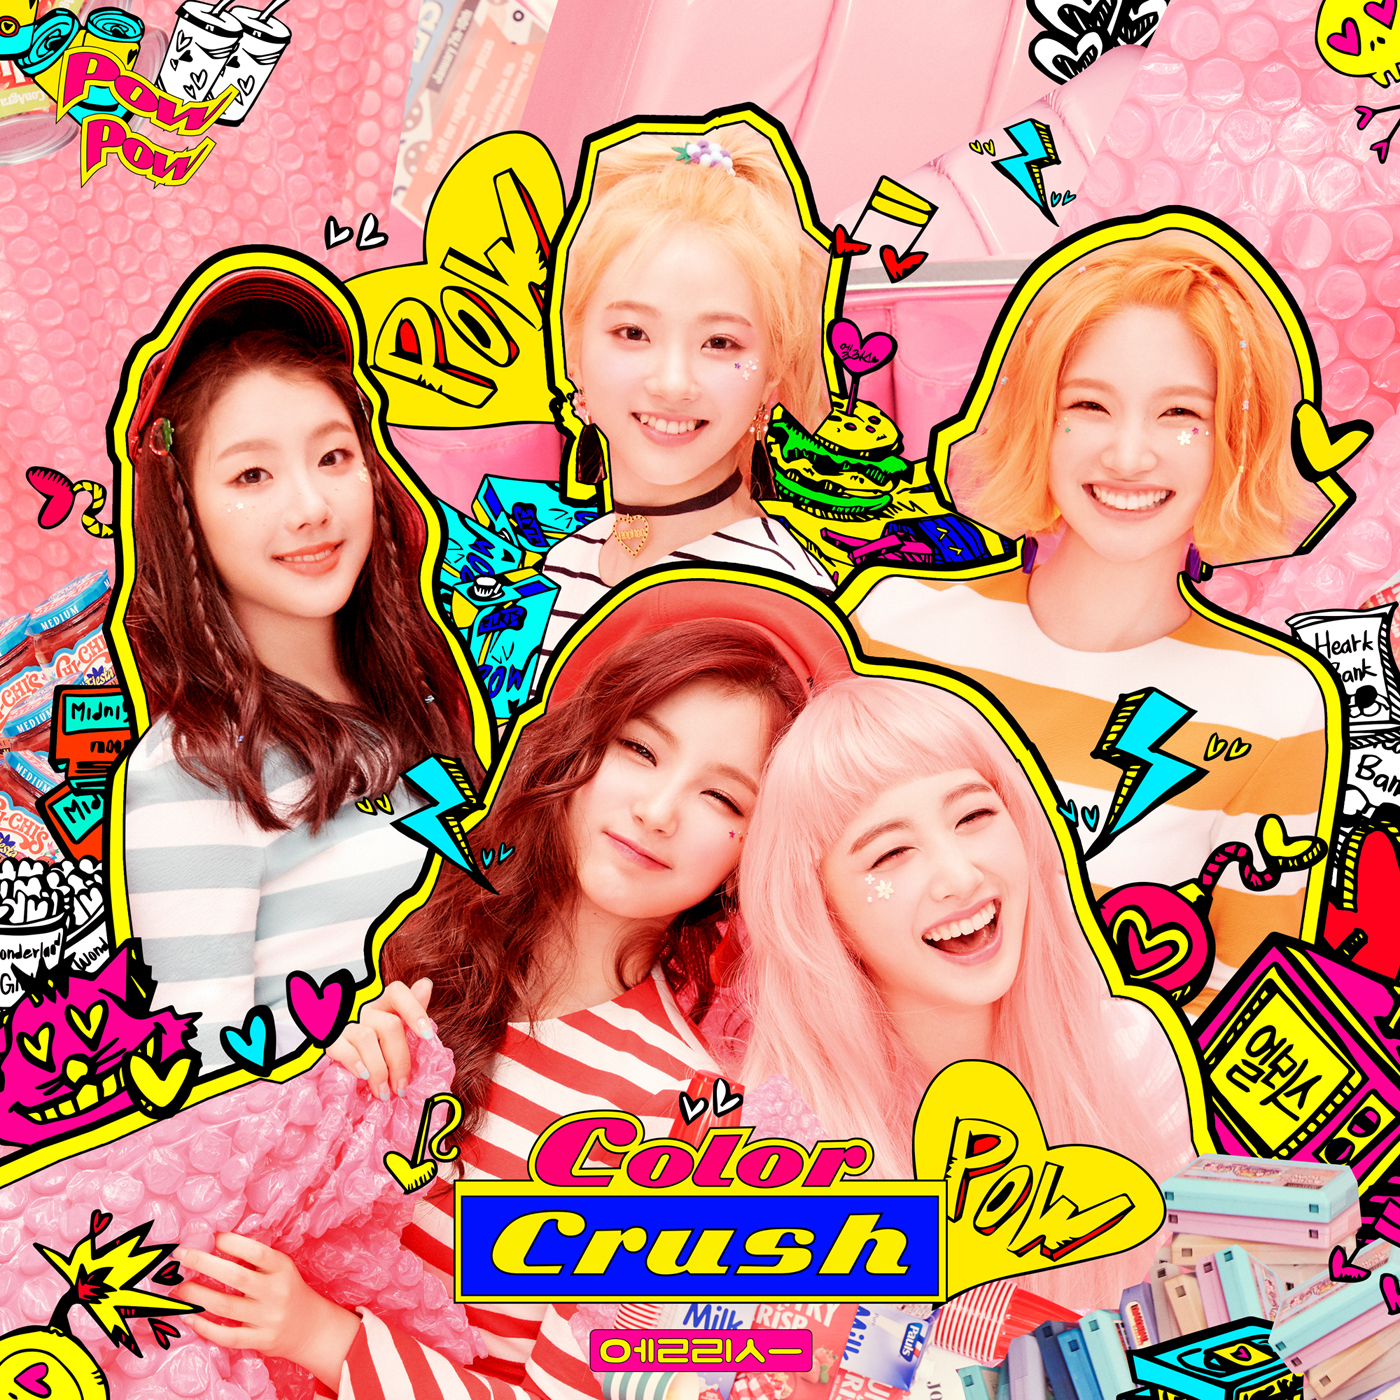 20170914.0417.3 Elris - Color Crush cover.jpg